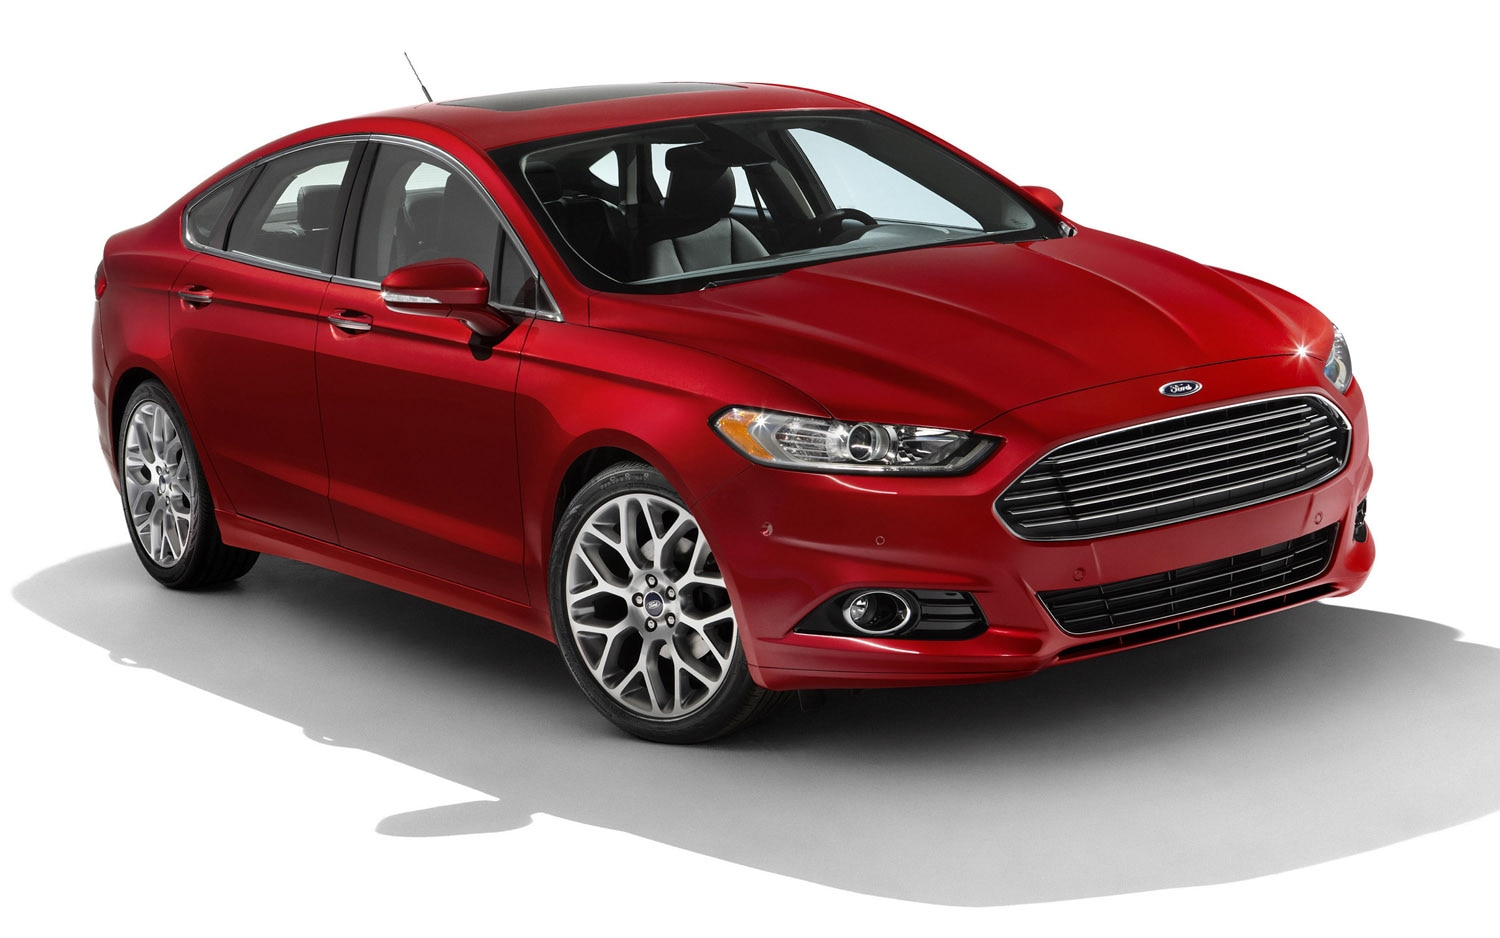 2013 Ford Fusion Front Three Quarter 31